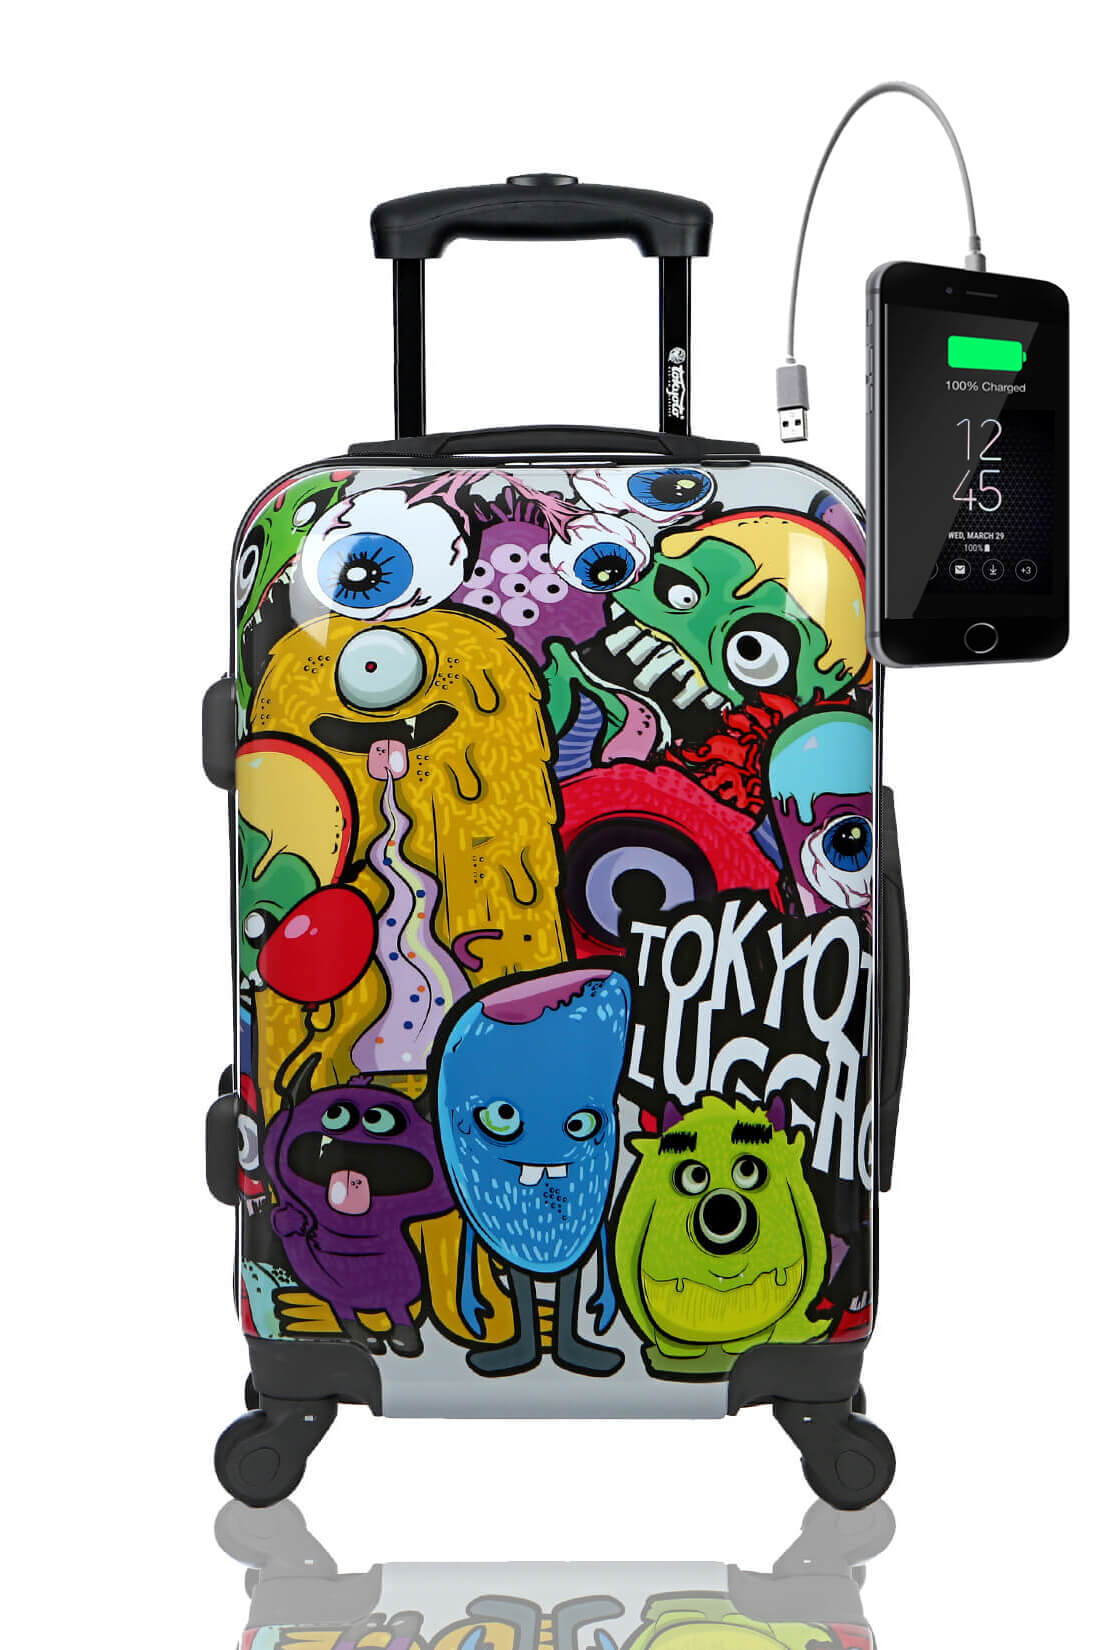 Valise Rigide Online Cabine Trolley Enfant TOKYOTO LUGGAGE Modelle MONSTERS&ZOMBIES